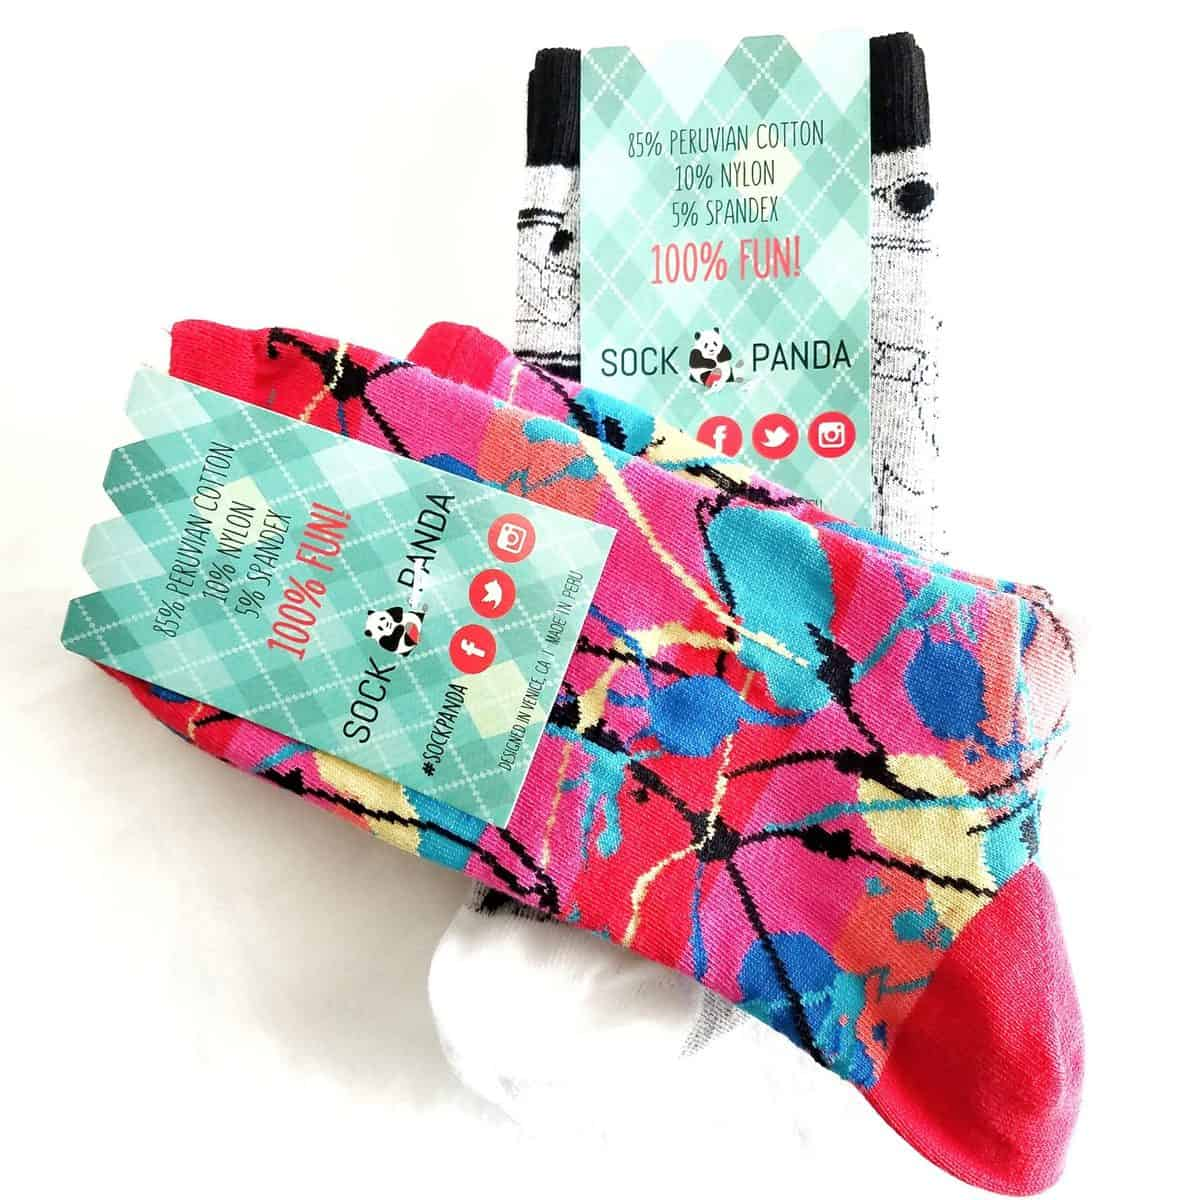 August 2017 Sock Panda Review - Socks